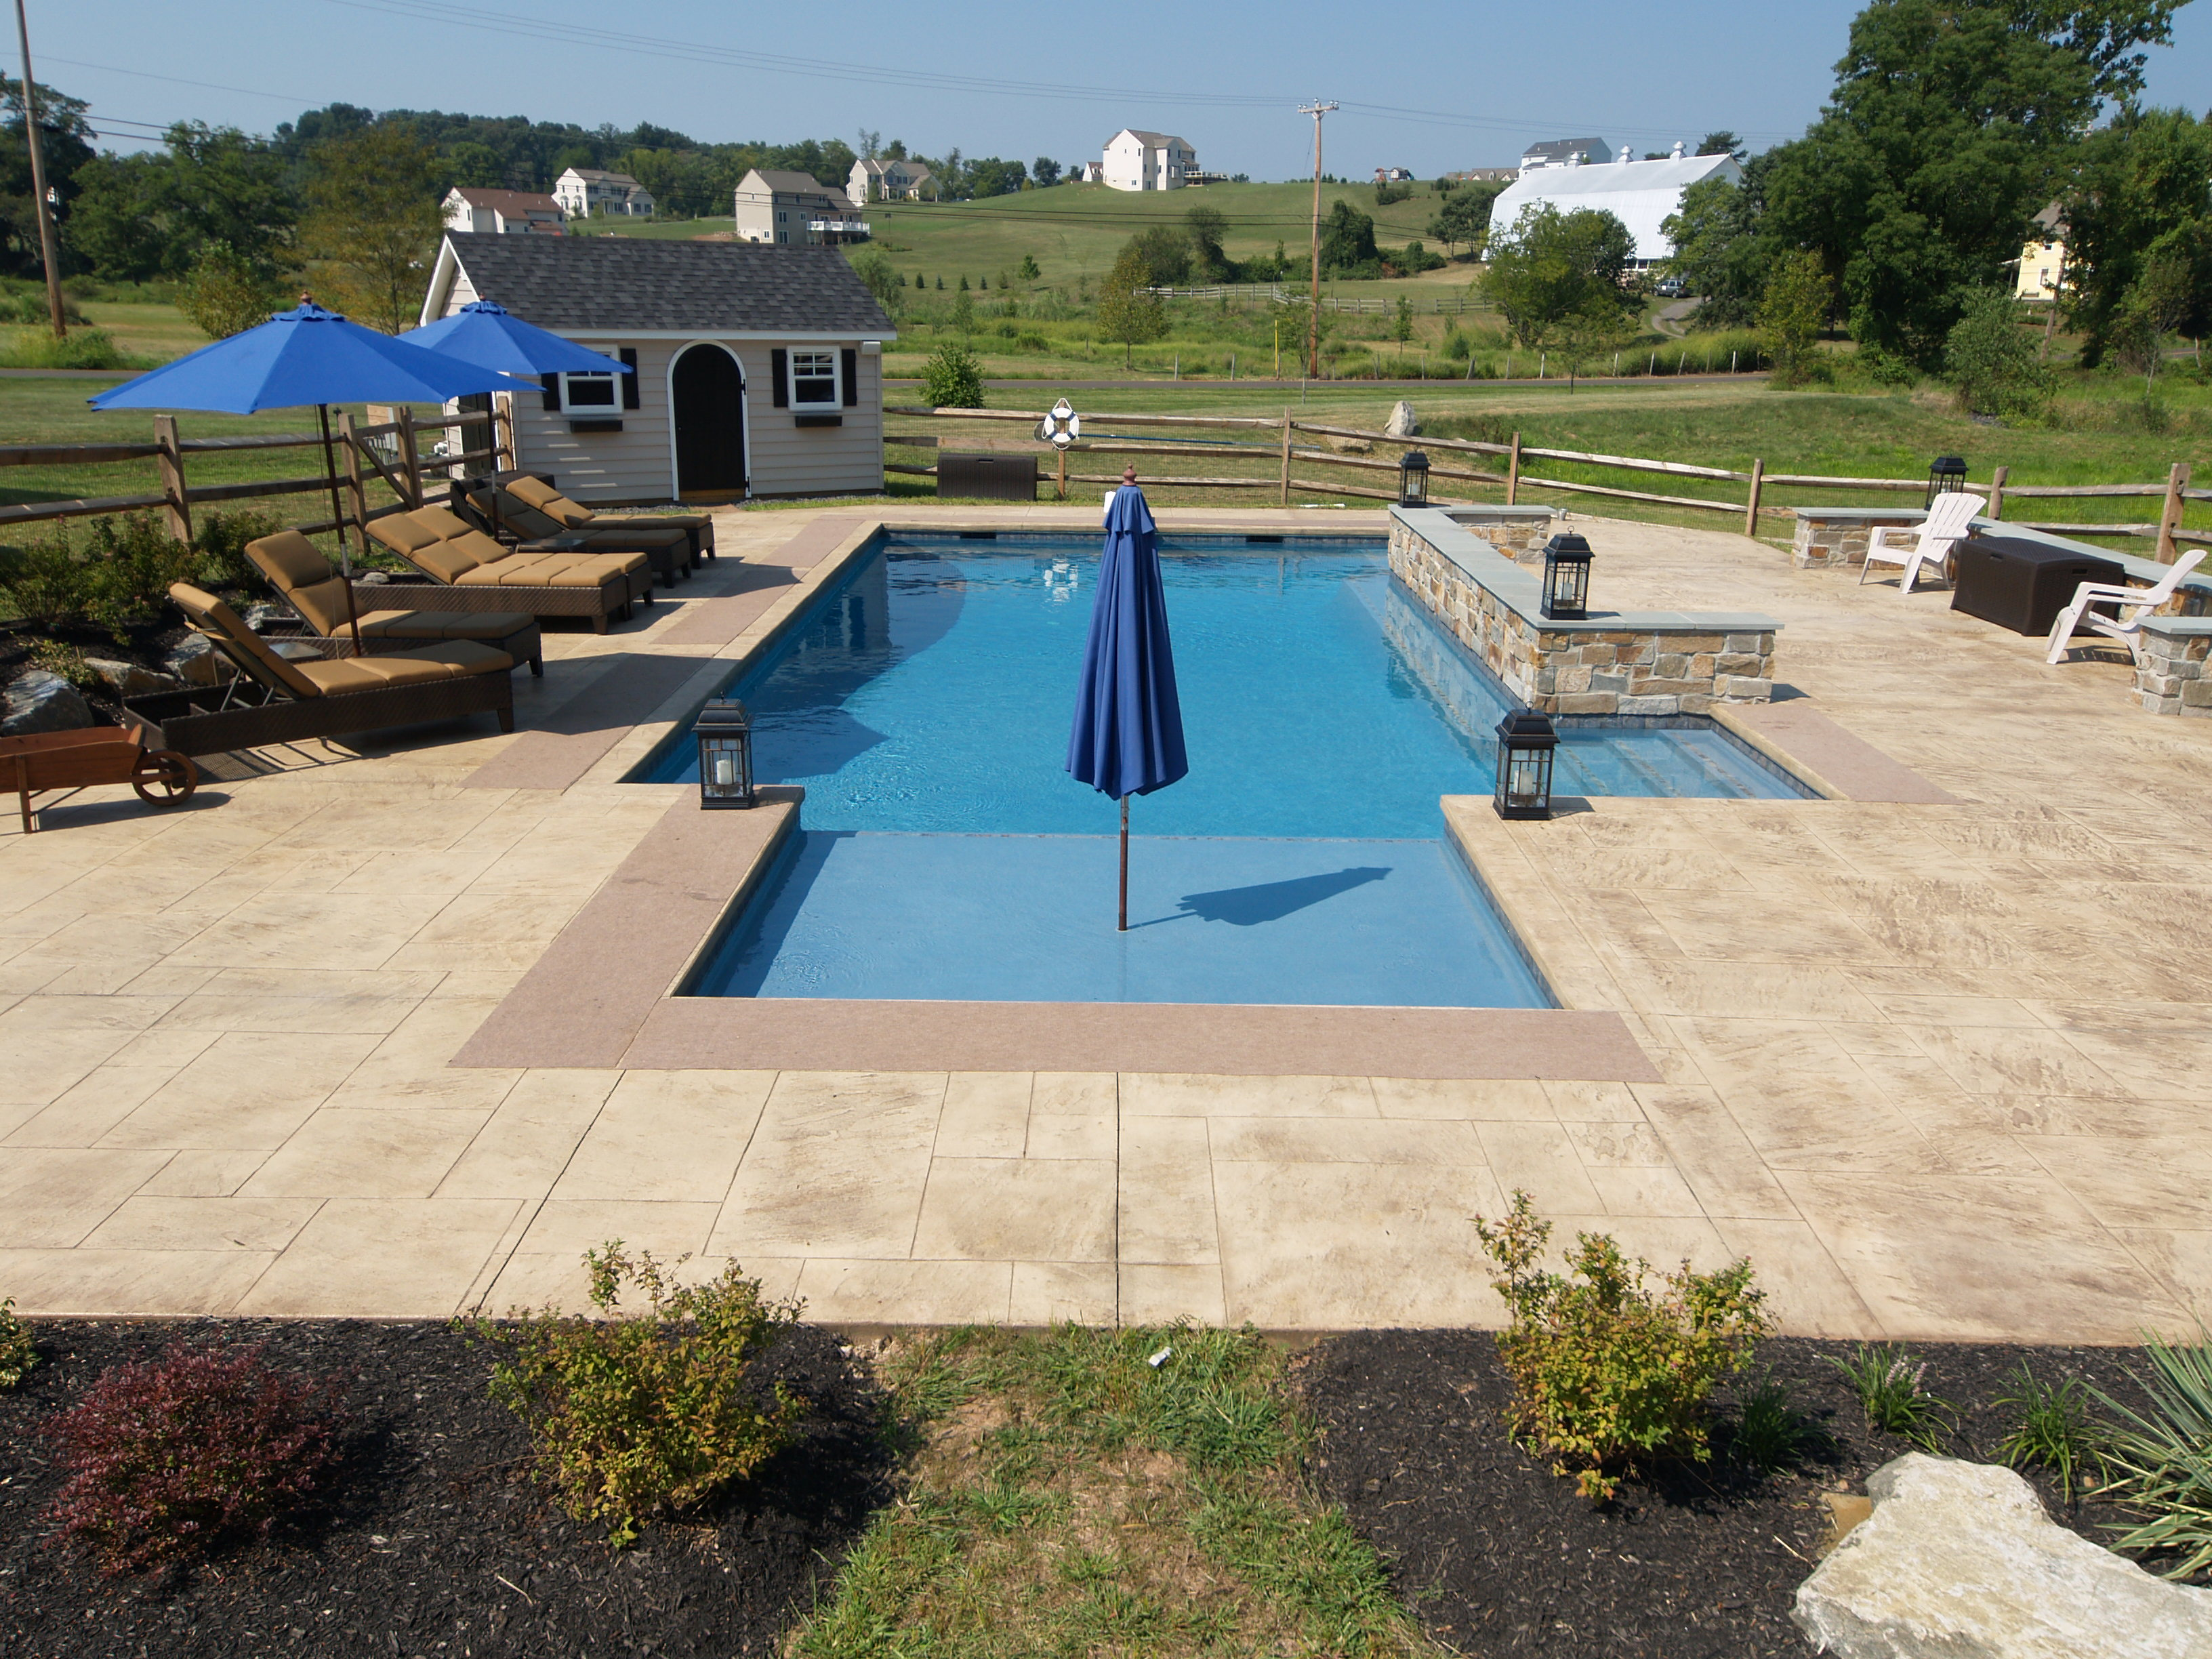 Gunite Swimming Pool Designs Gunite Pools & Pool Builders  Swimming Pool Design  Fronheiser Pools